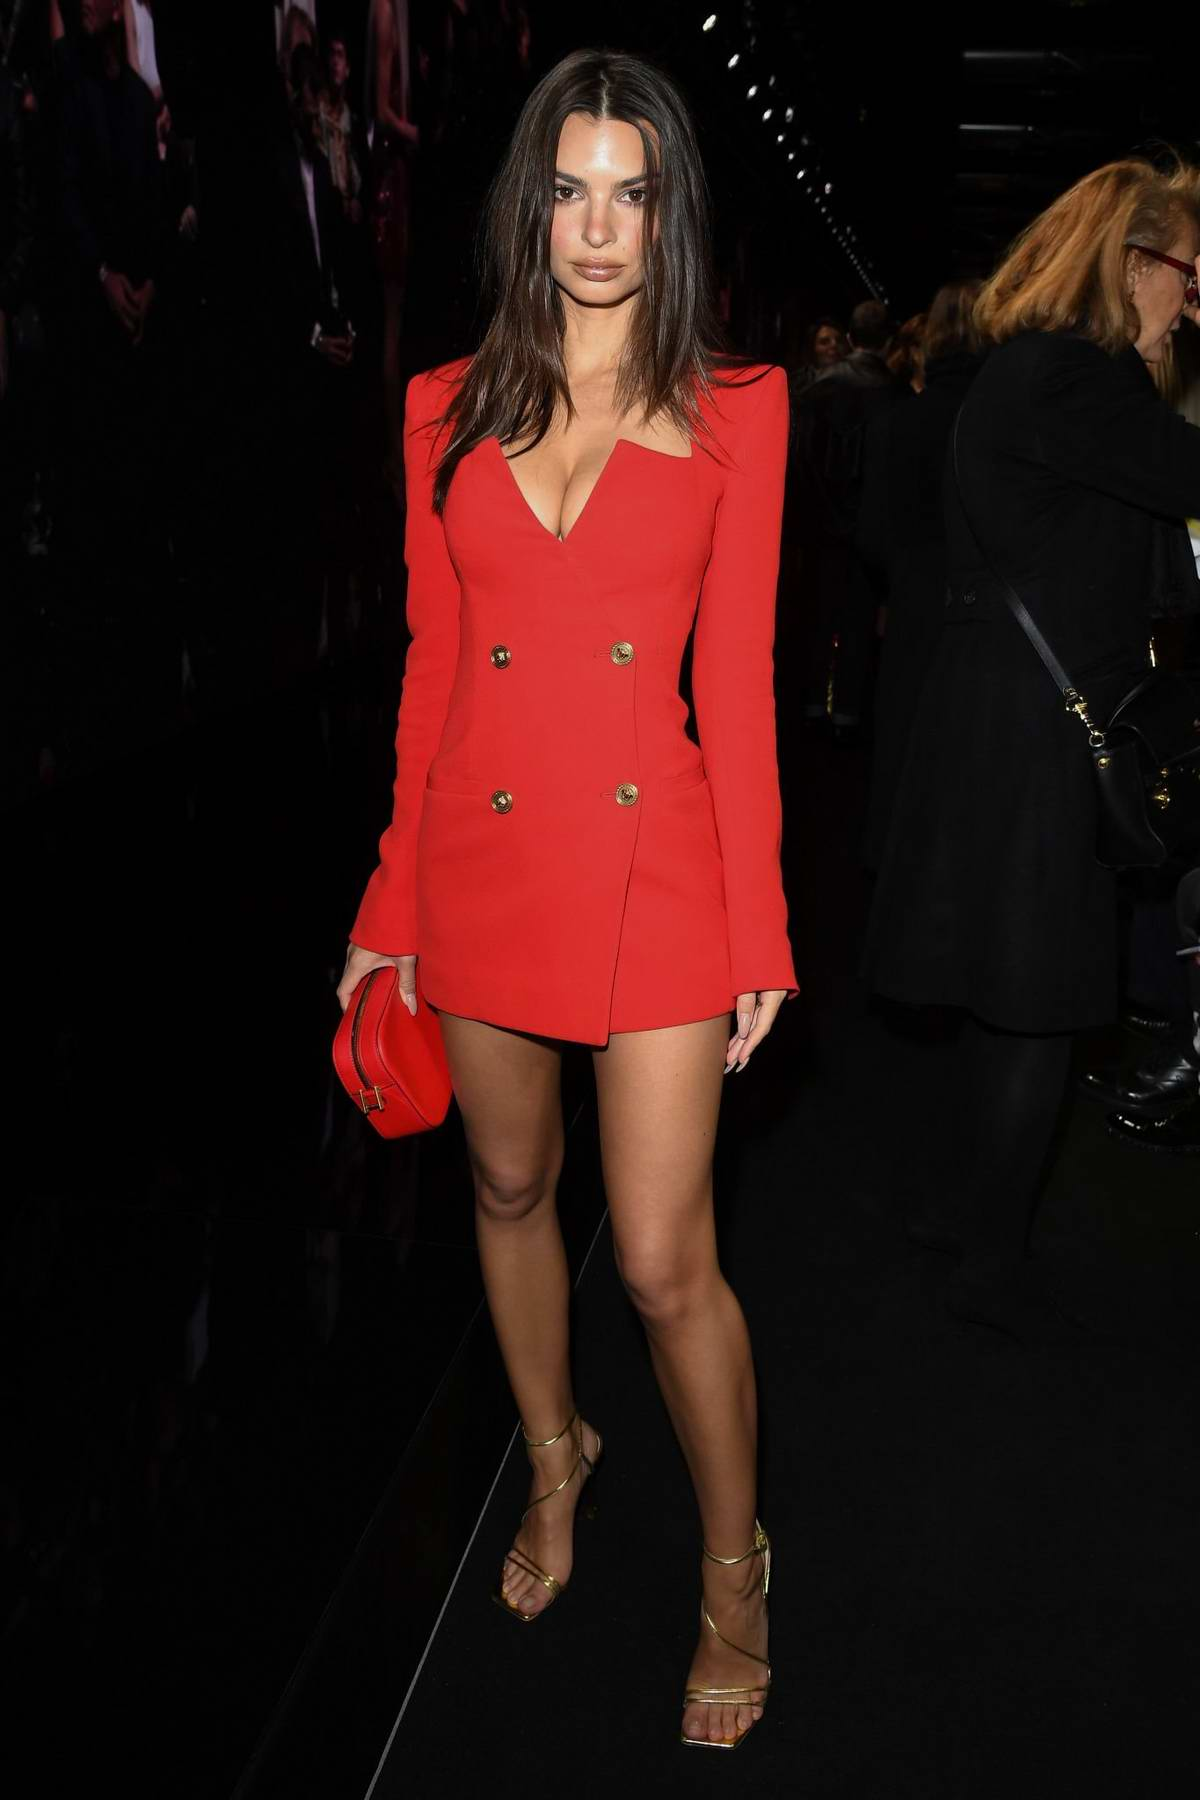 Emily Ratajkowski attends the Versace fashion show, F/W 2020 during Milan Fashion Week in Milan, Italy